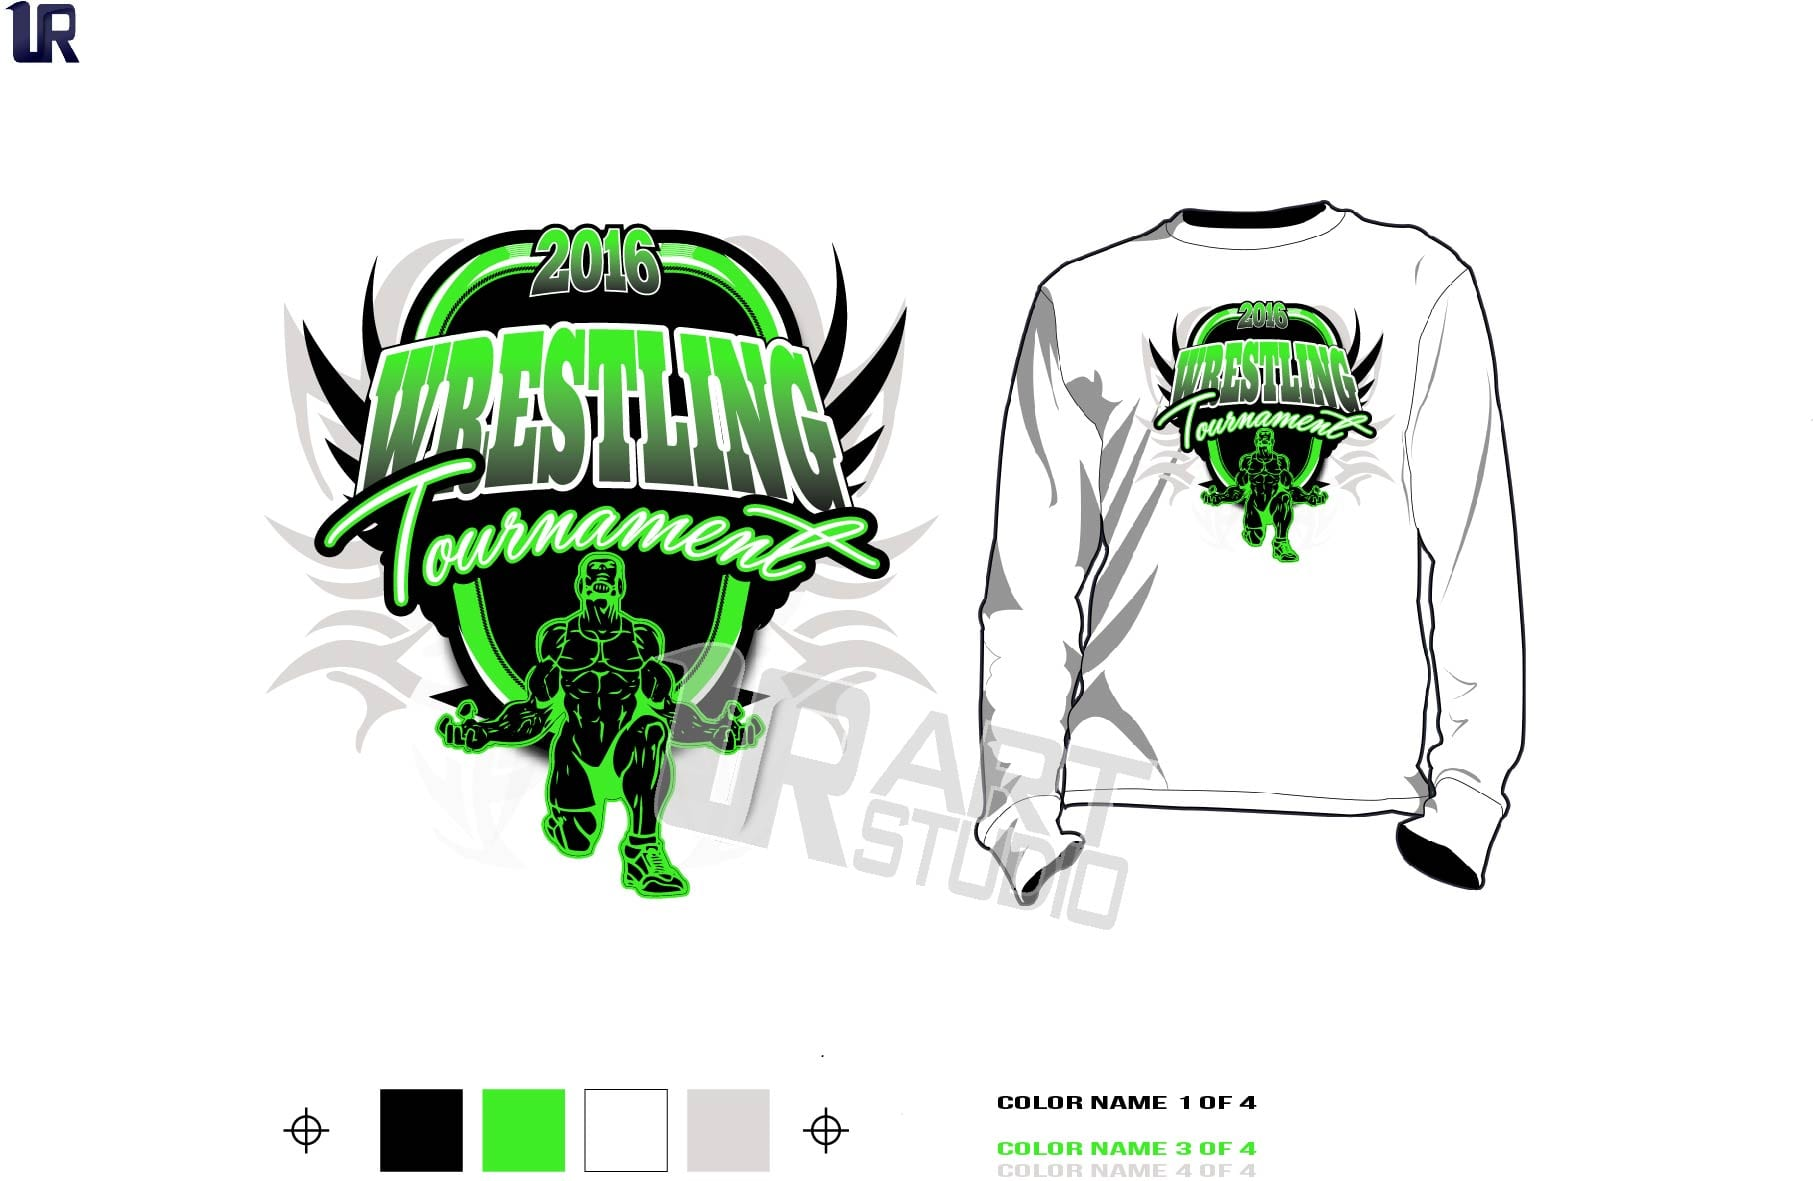 Wrestling Tournament Tshirt Vector Design For Print Urartstudio